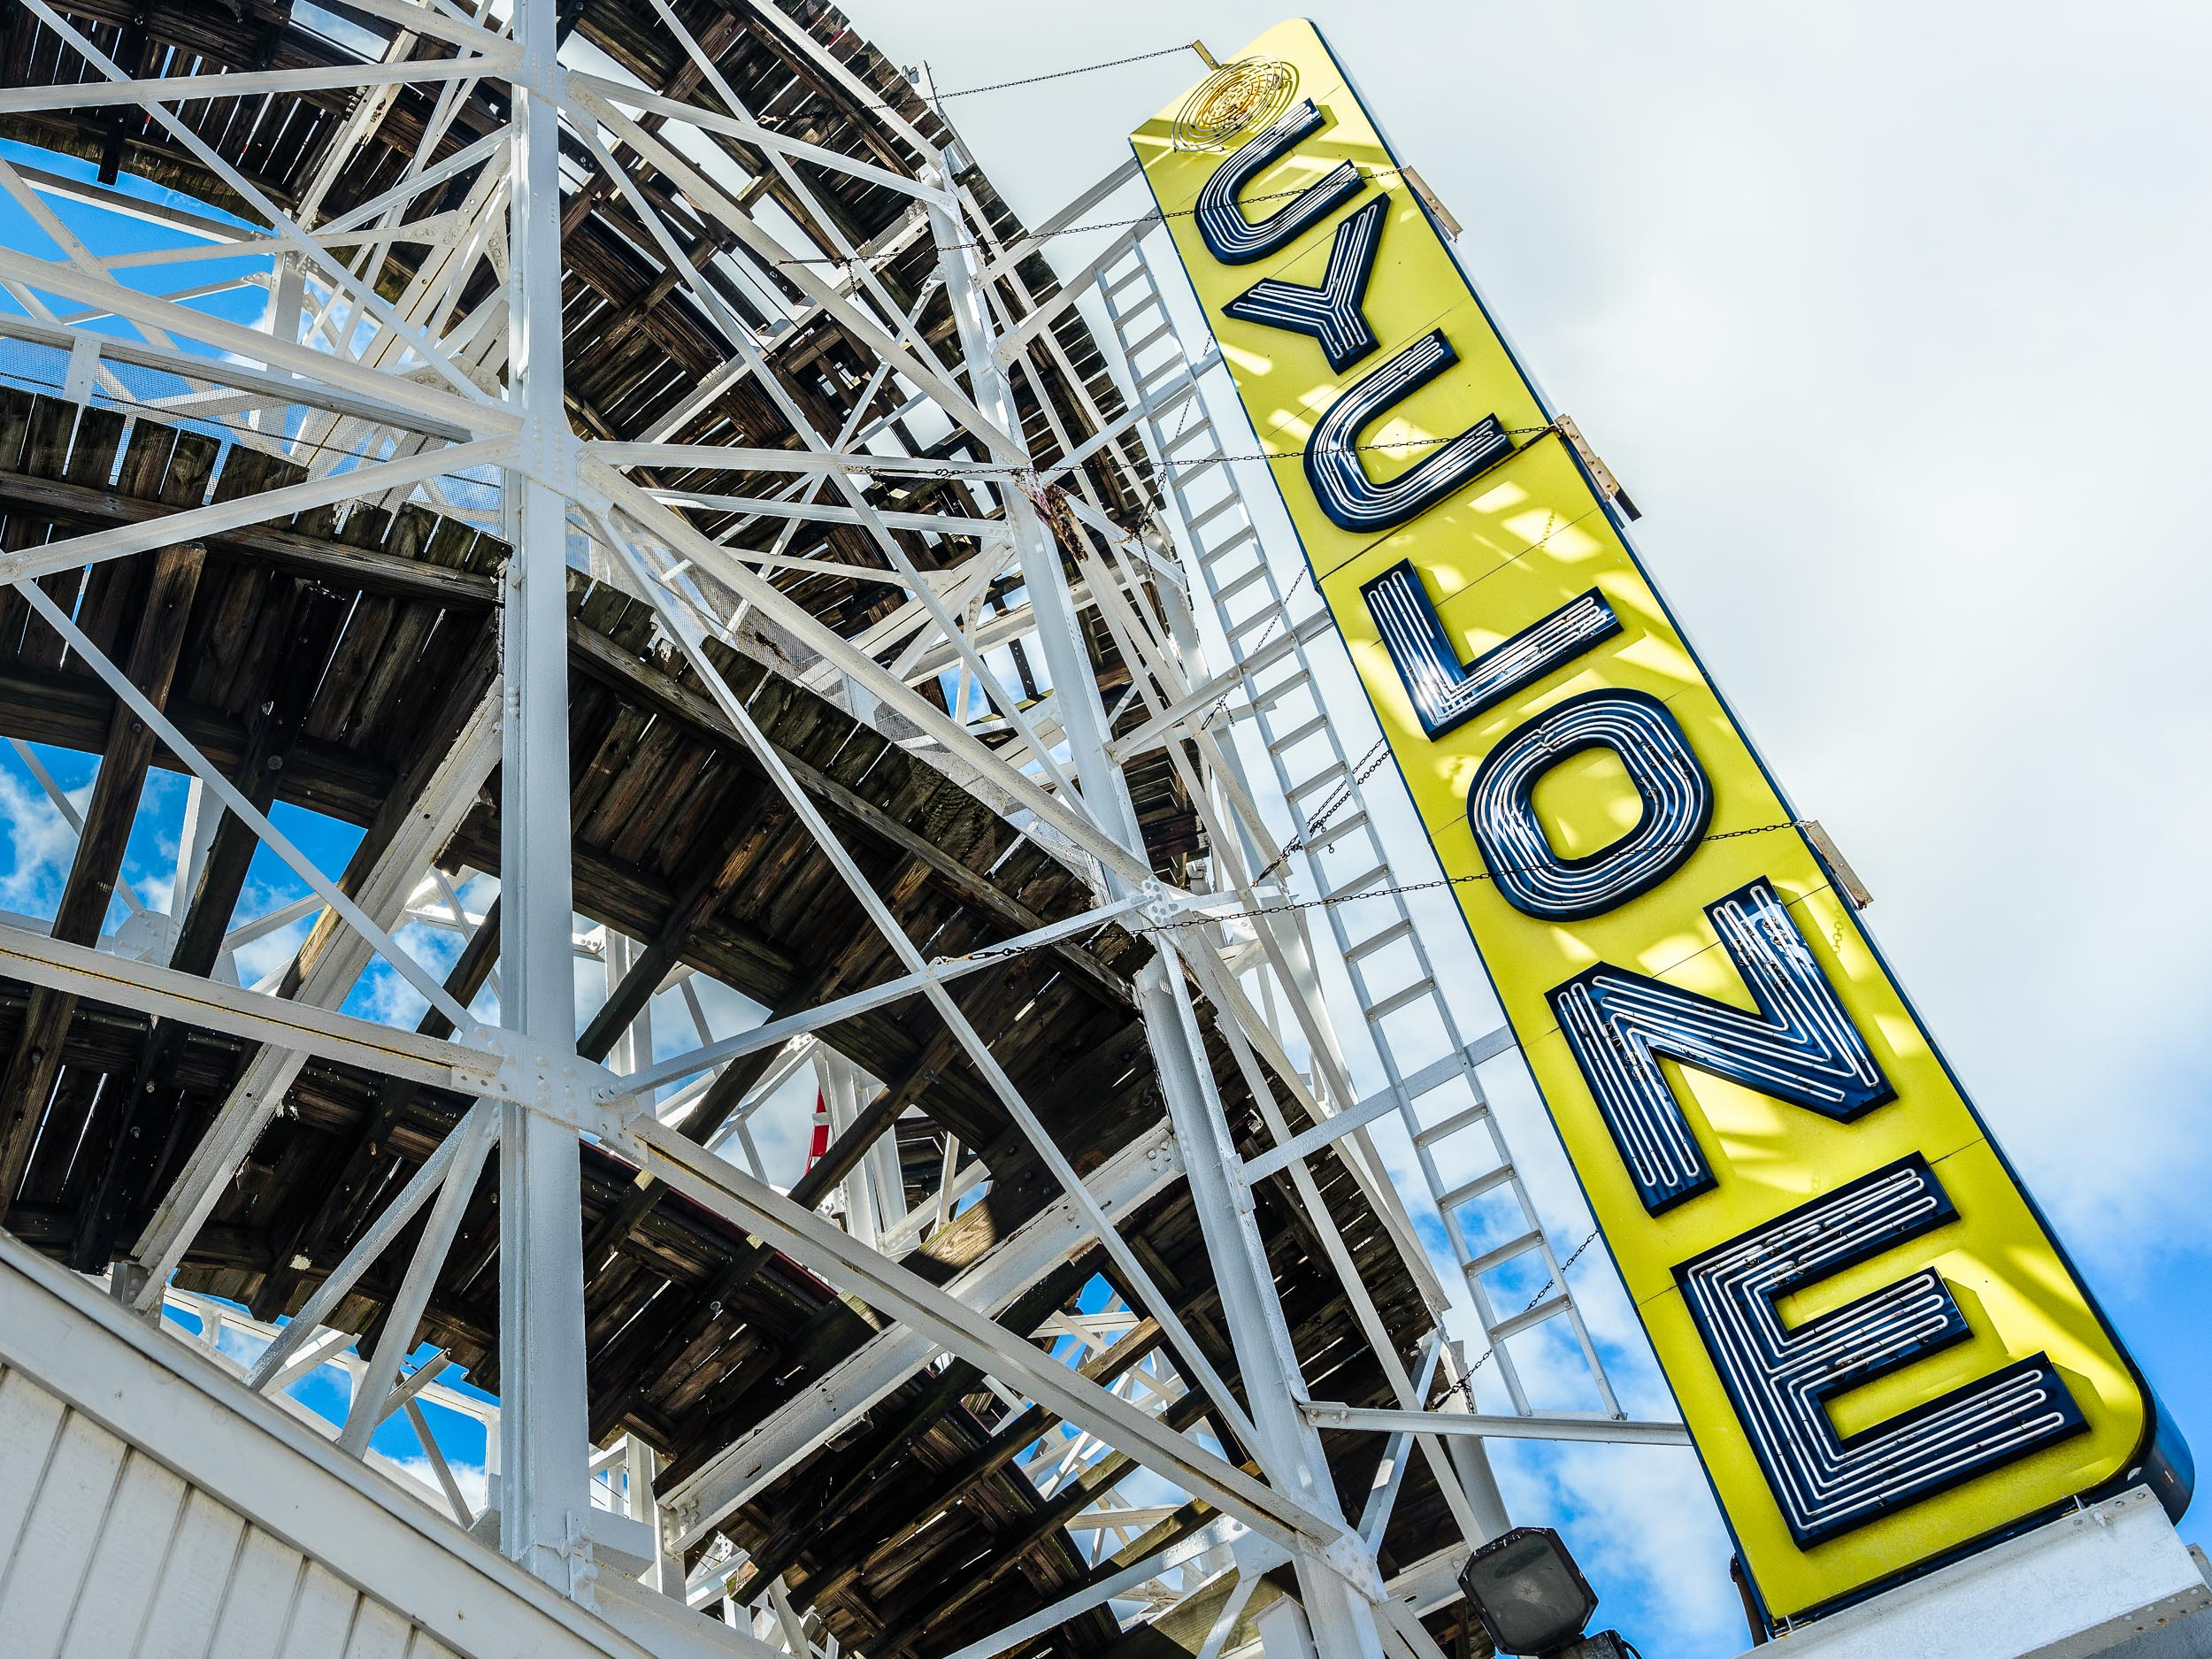 Yellow Cyclone sign with view of tracks - they were running tests with empty roller coaster seats while I was there